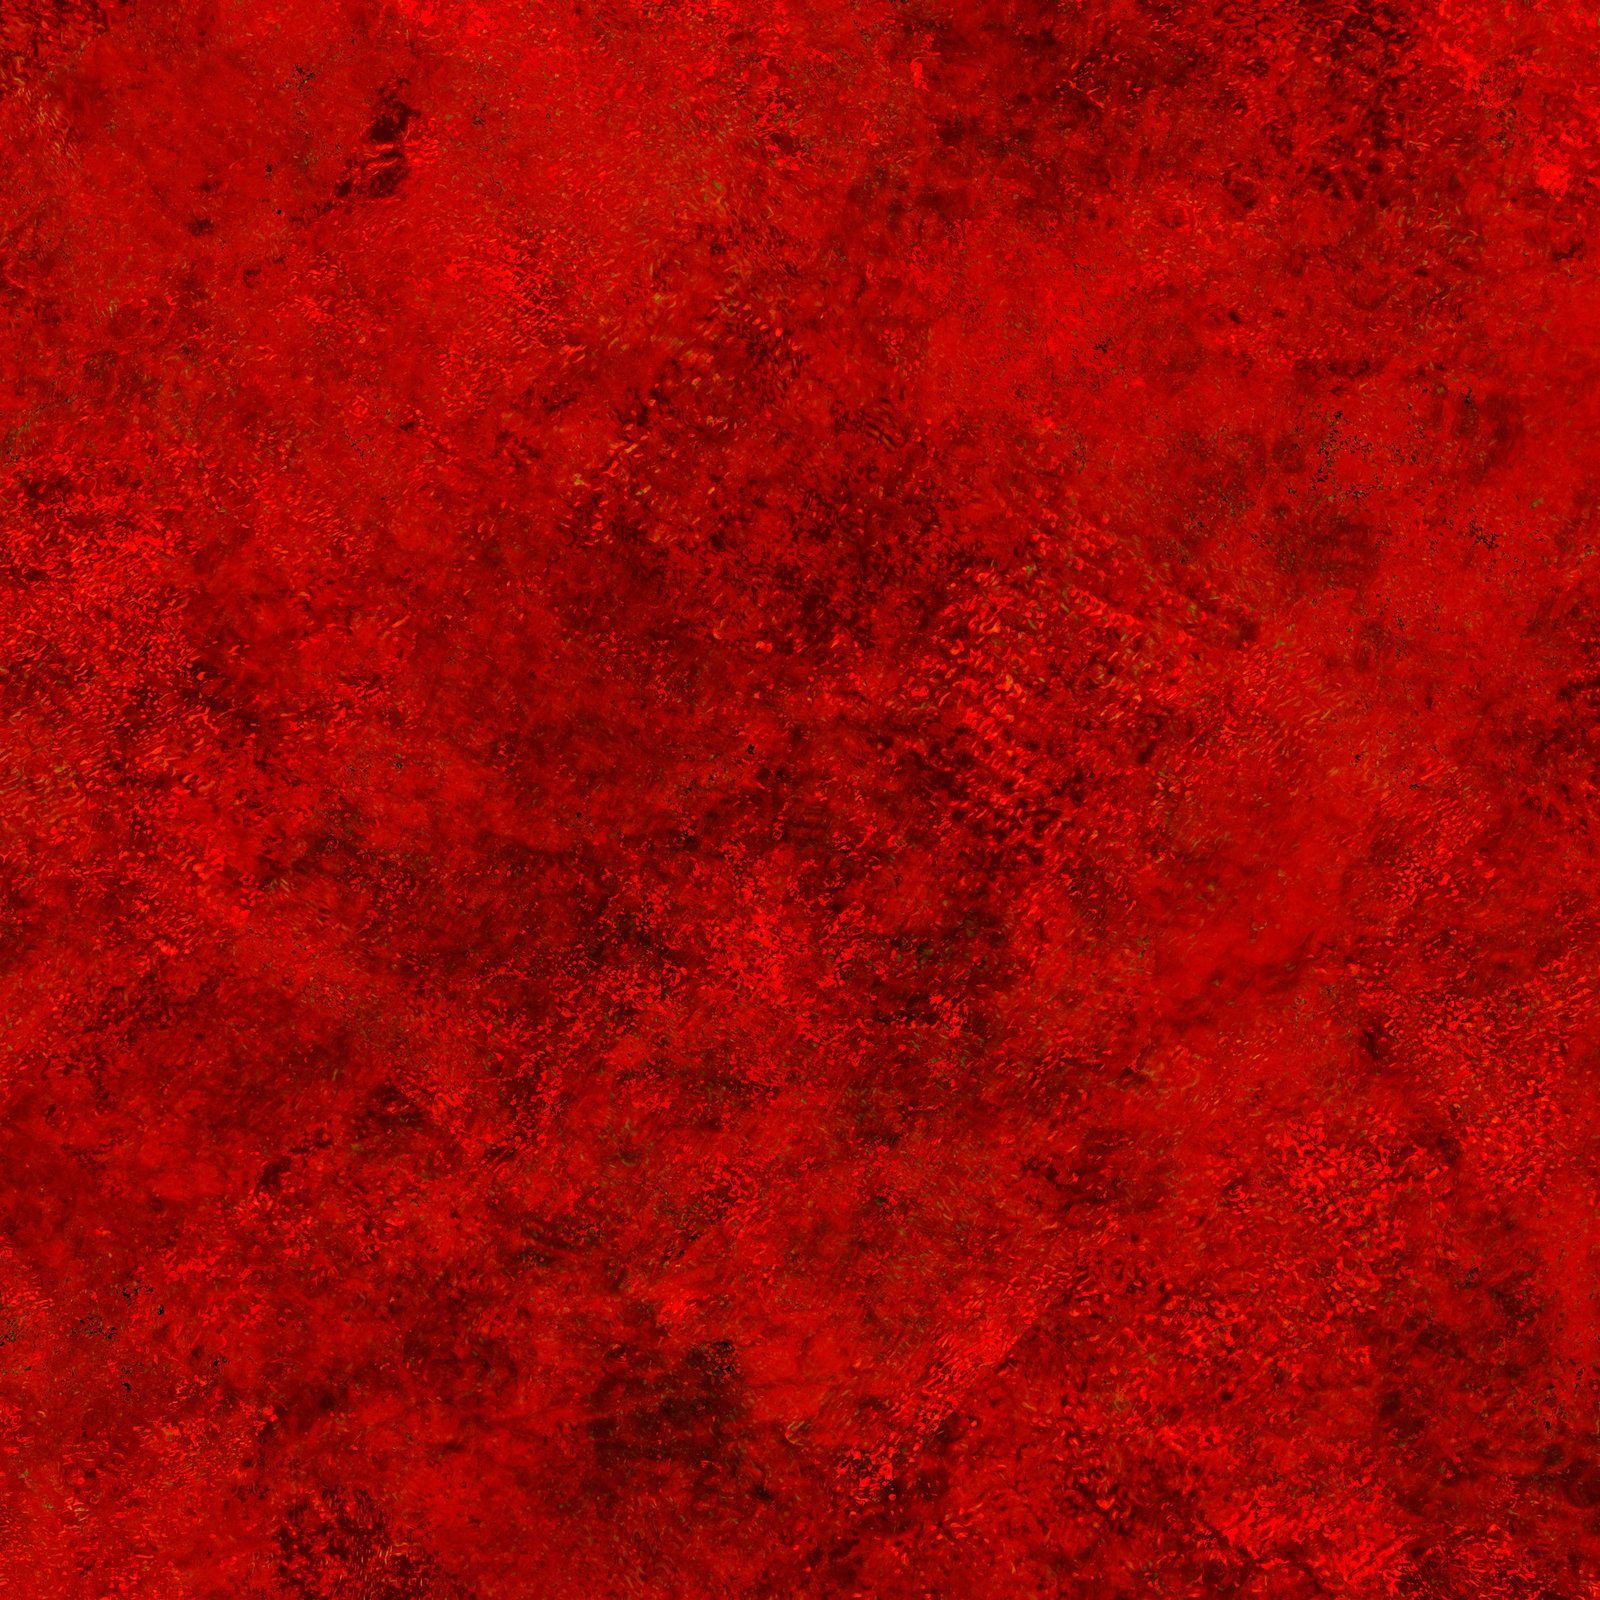 [48+] Red Glitter Wallpaper On WallpaperSafari